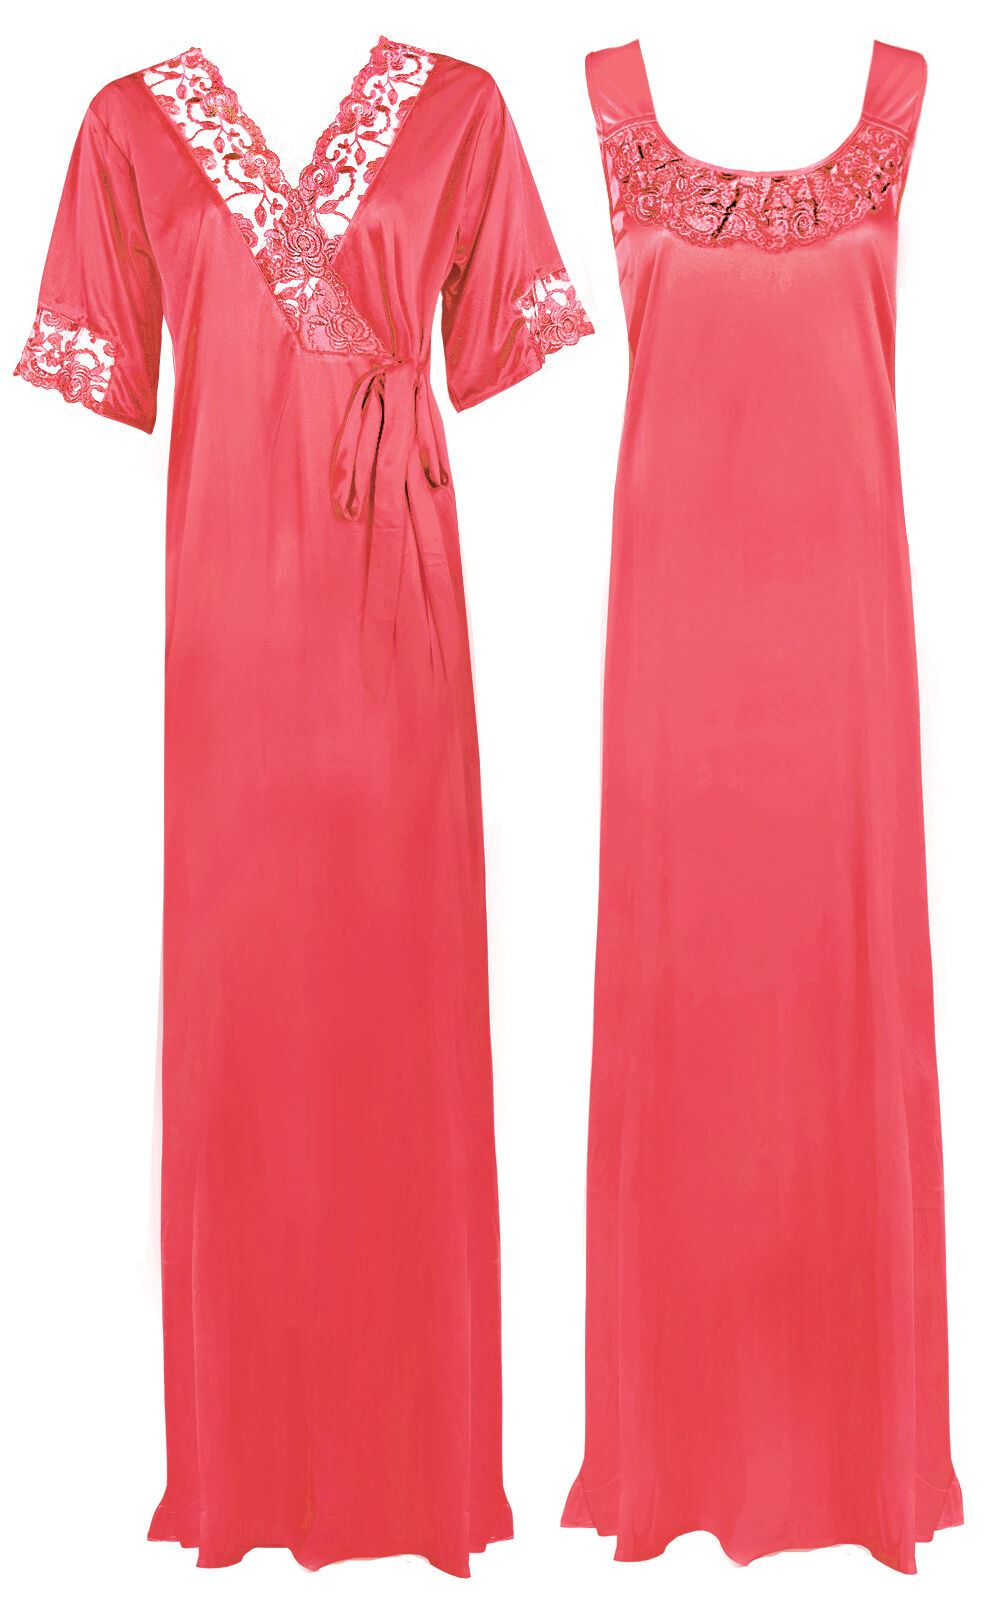 Women Plus Size 2 Pcs Satin Nightdress - XL. 2XL CORAL PINK Hautie Nightfashion